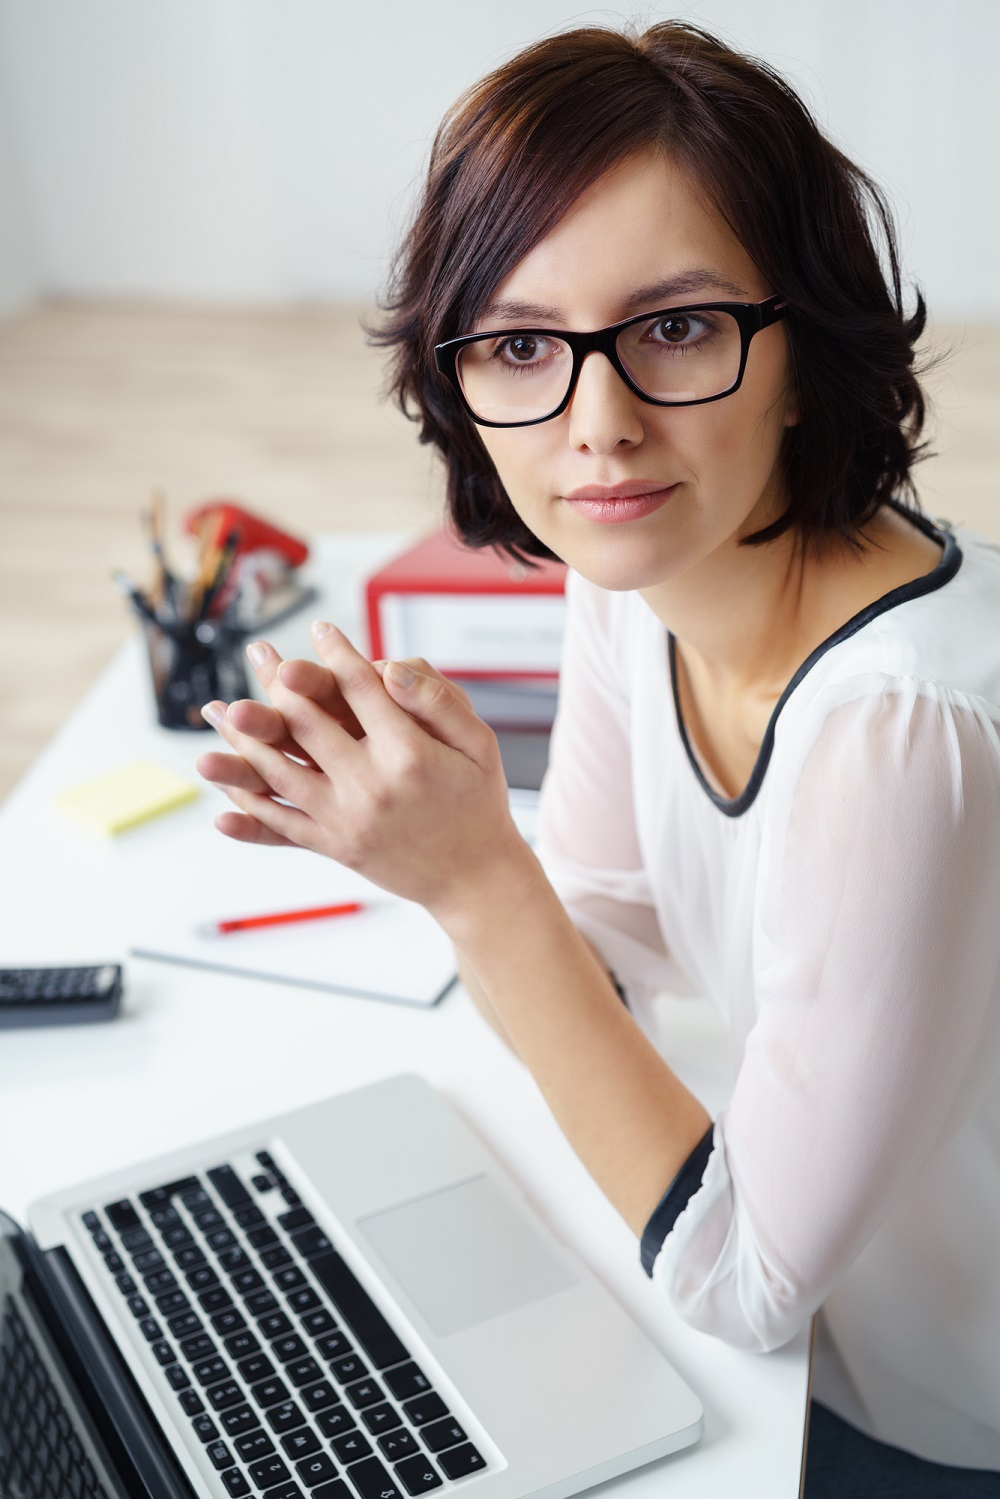 Questions to ask a potential Virtual Assistant before hiring